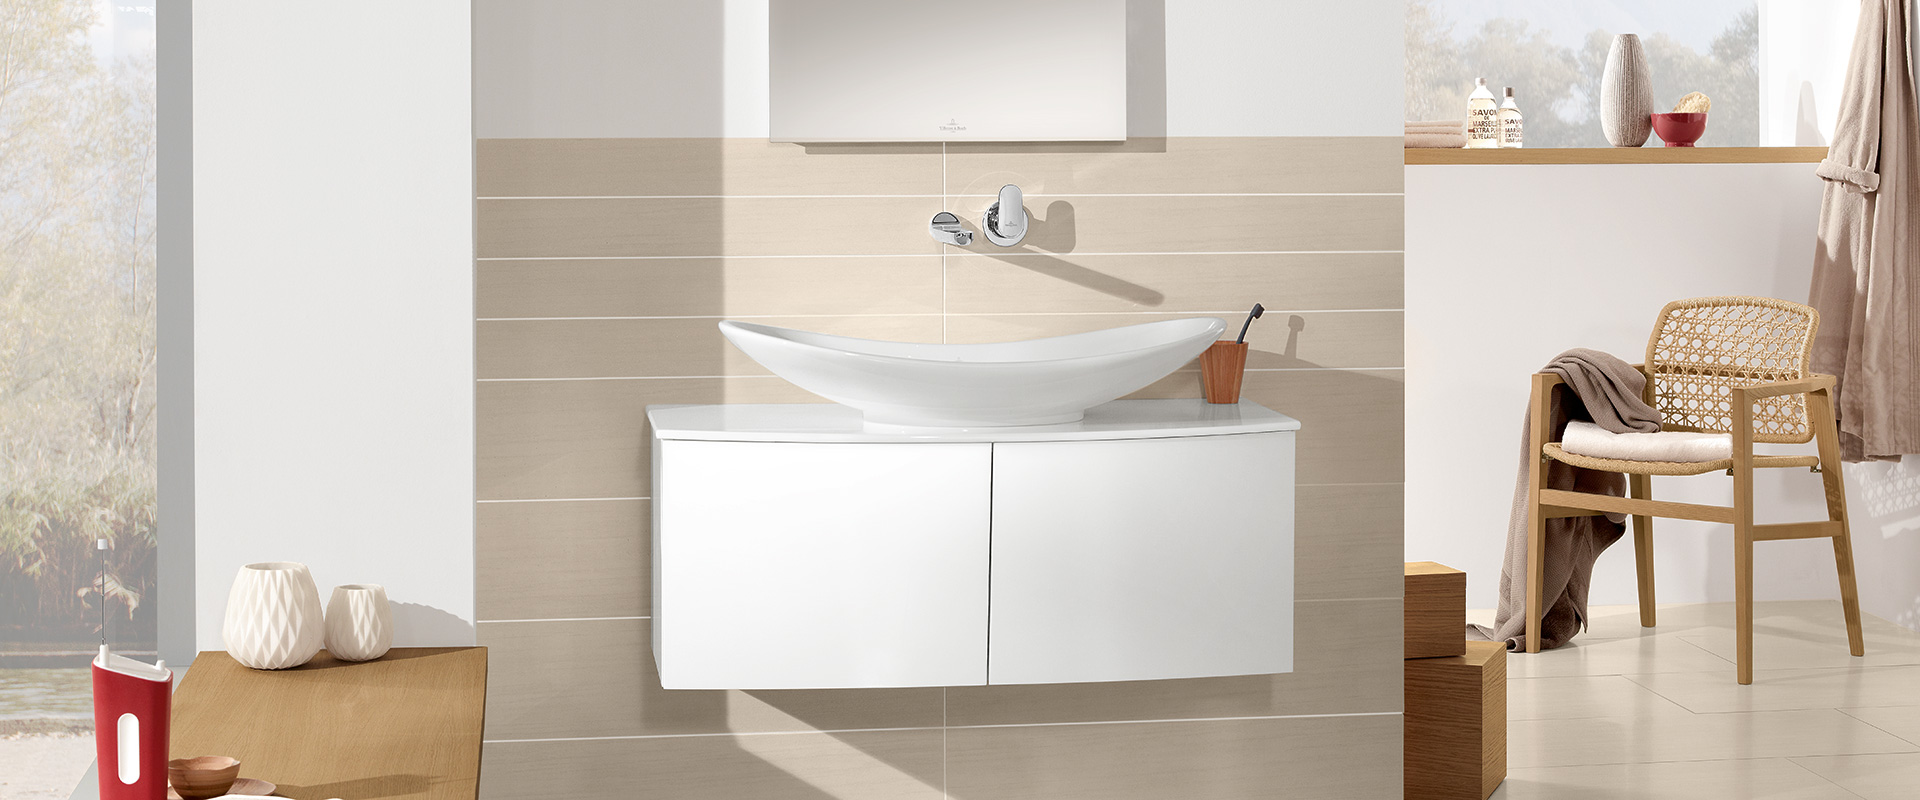 My Nature collection by Villeroy & Boch – An airy new design